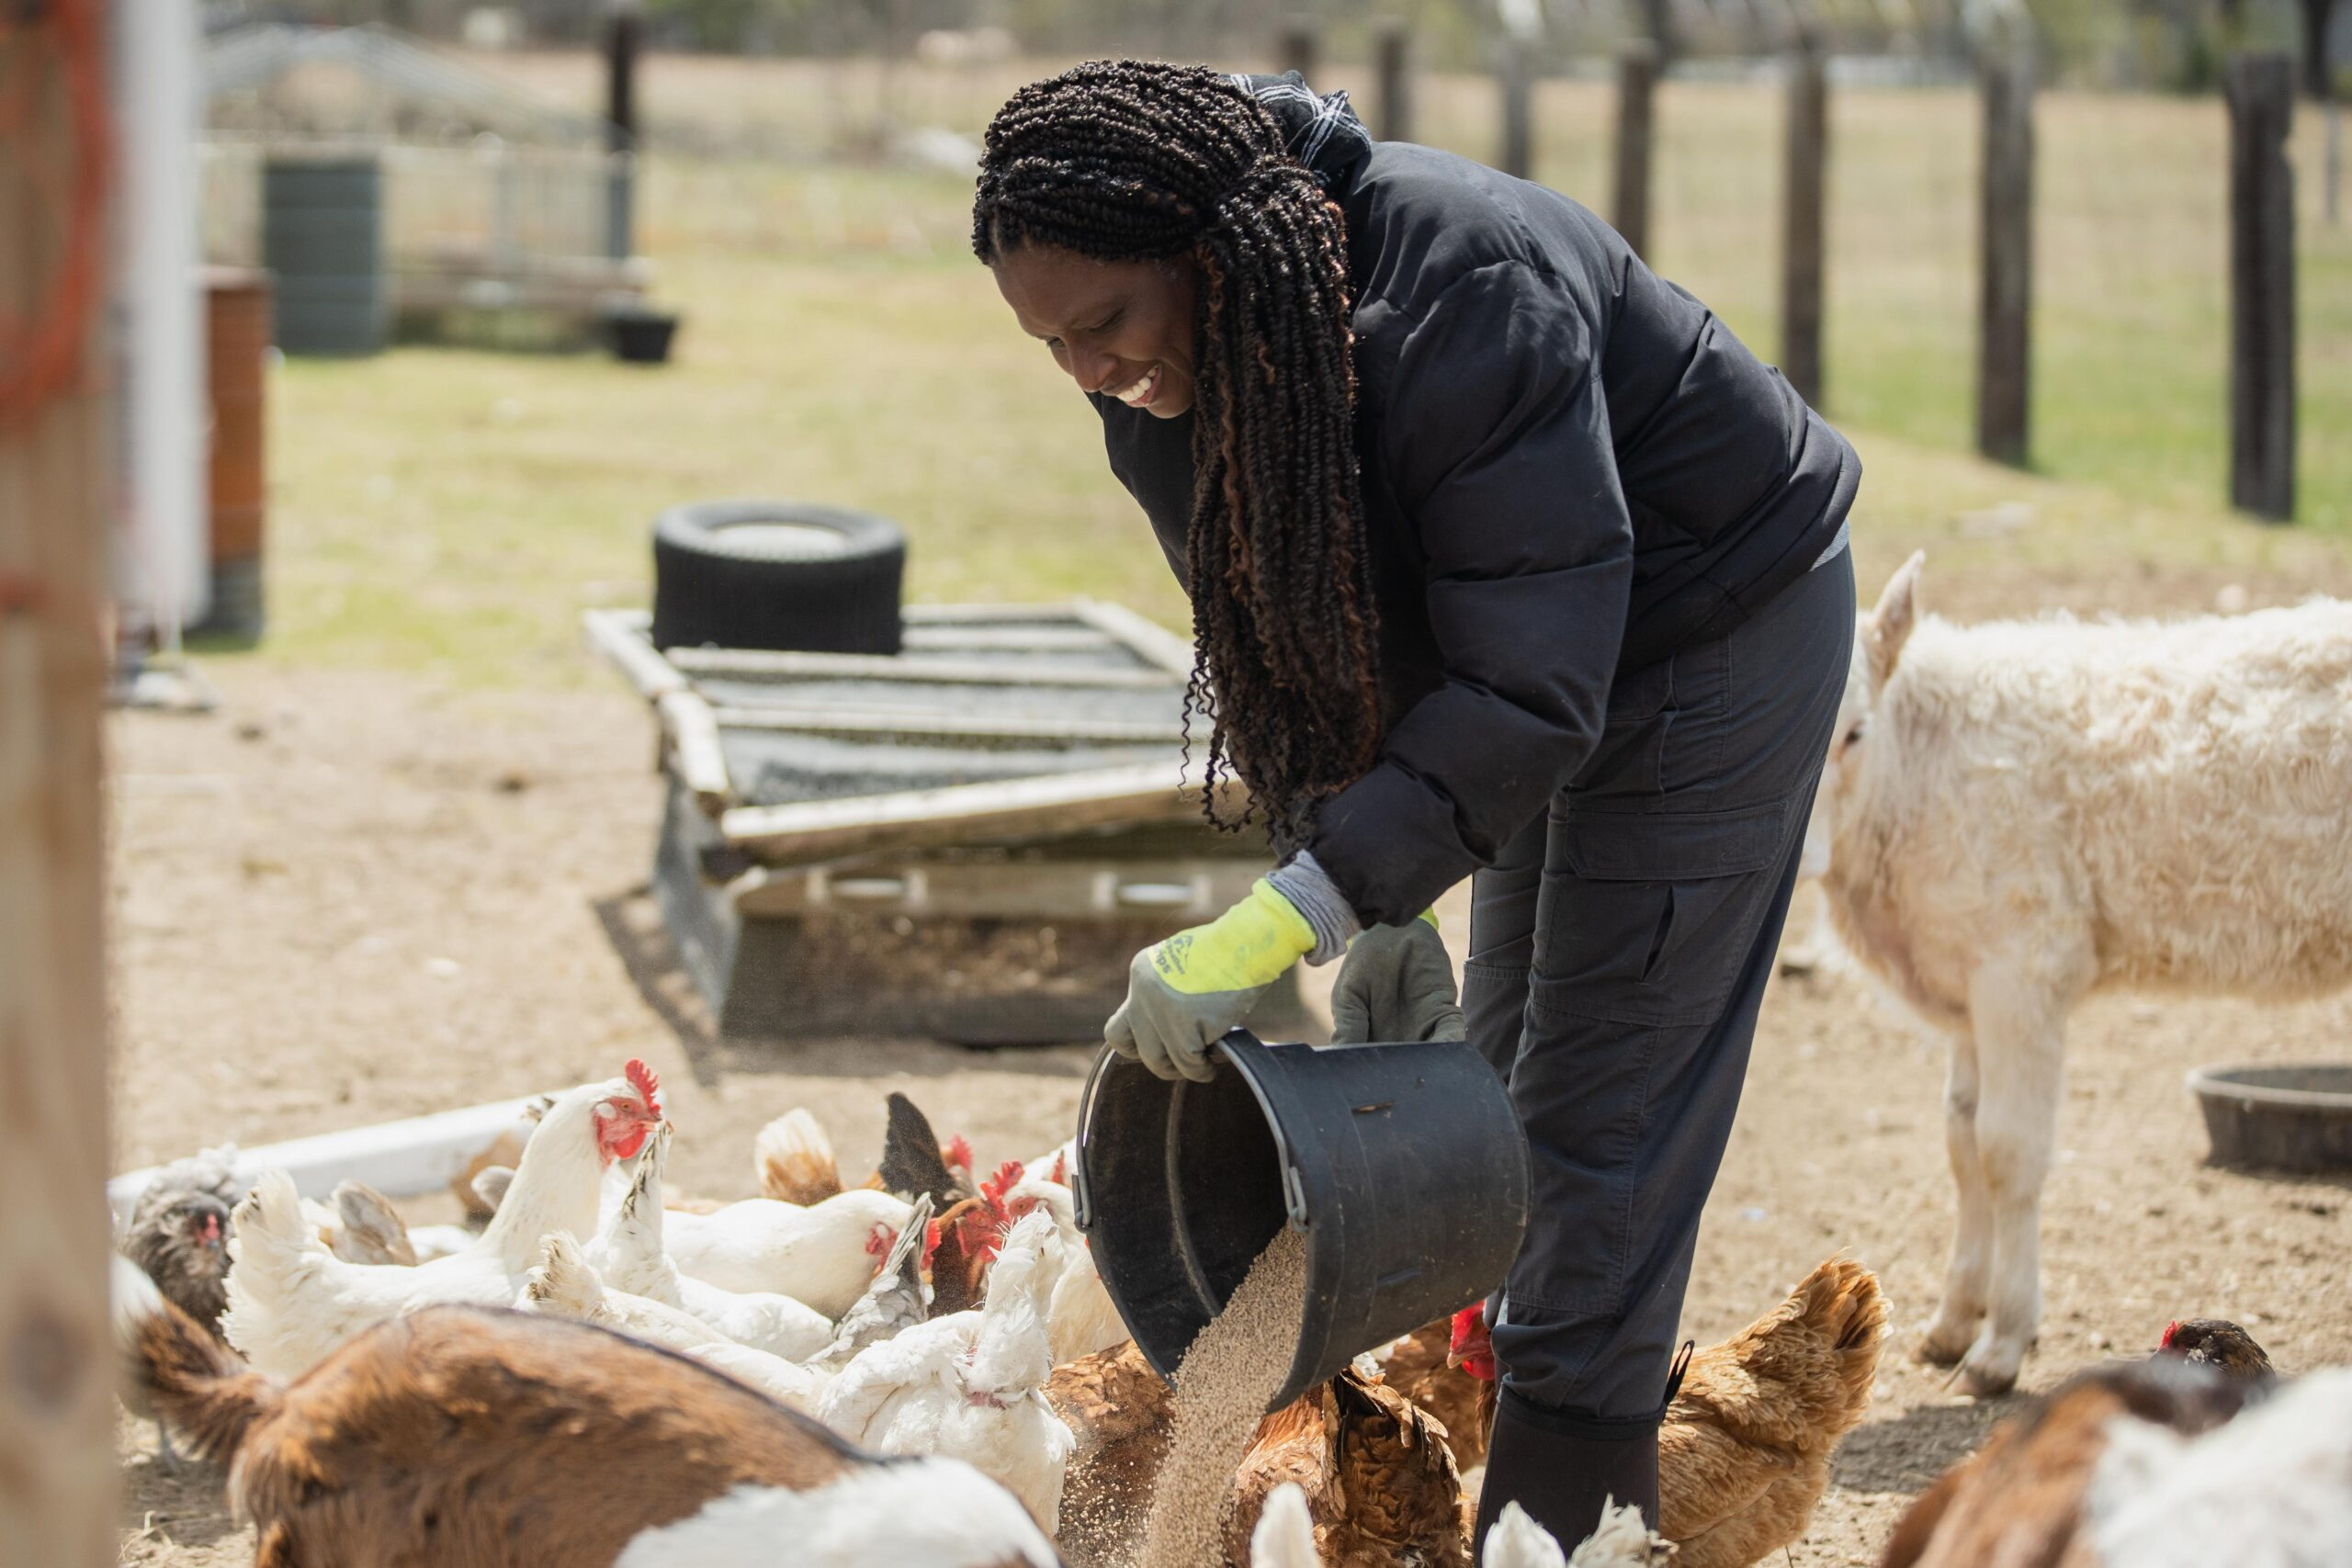 Johari Cole-Kweli feeds her chickens on her farm, Iyabo Farms, in Pembroke Township, Illinois on April 21, 2021. Credit: Pat Nabong/Sun-Times